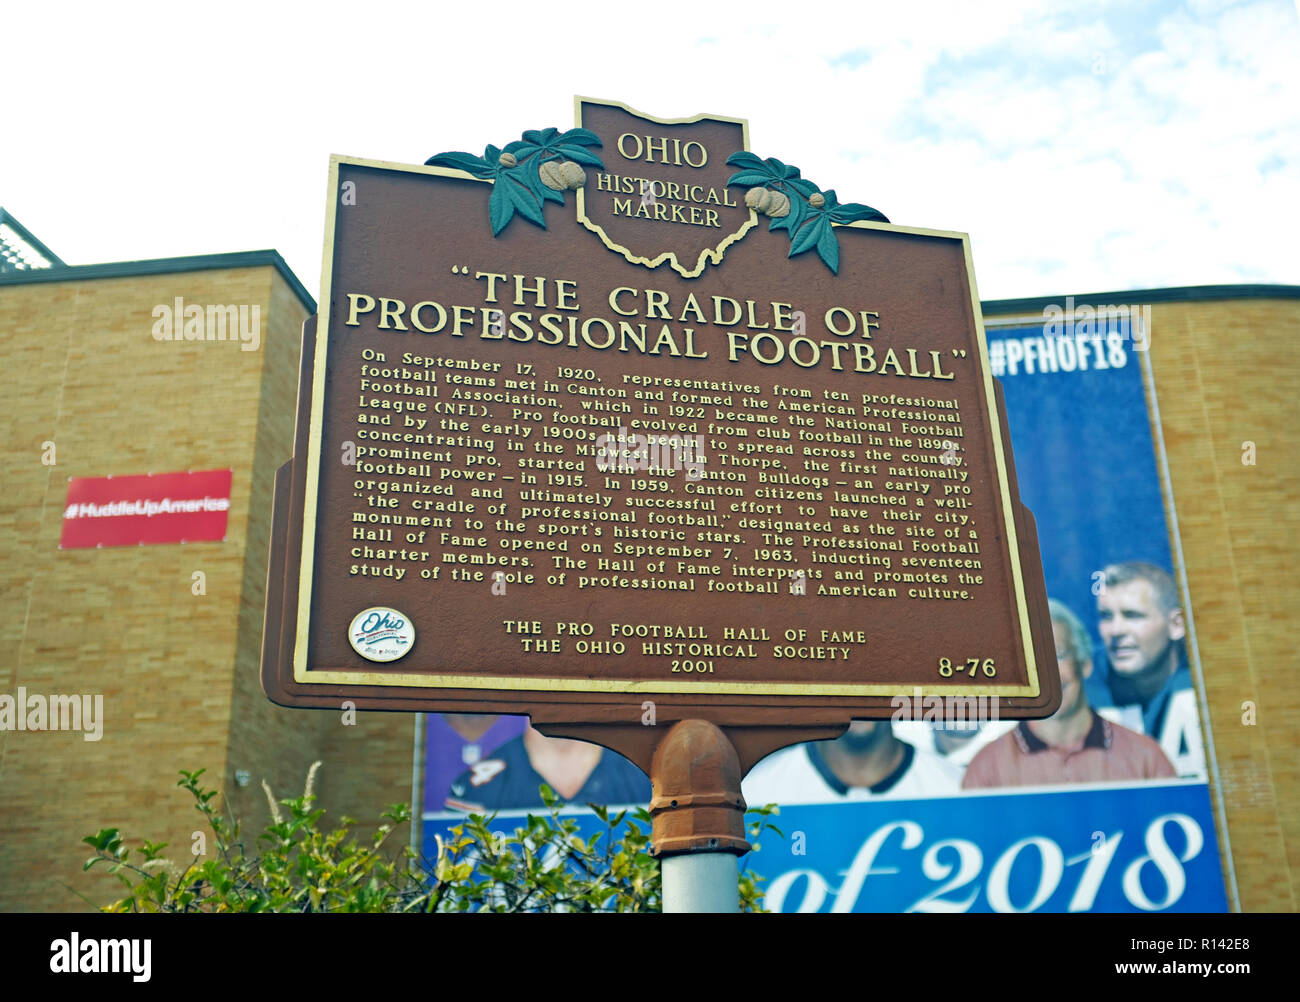 An Ohio historical marker for the Pro Football Hall of Fame in Canton, Ohio, USA marks 'The Cradle of Professional Football' in the USA. - Stock Image